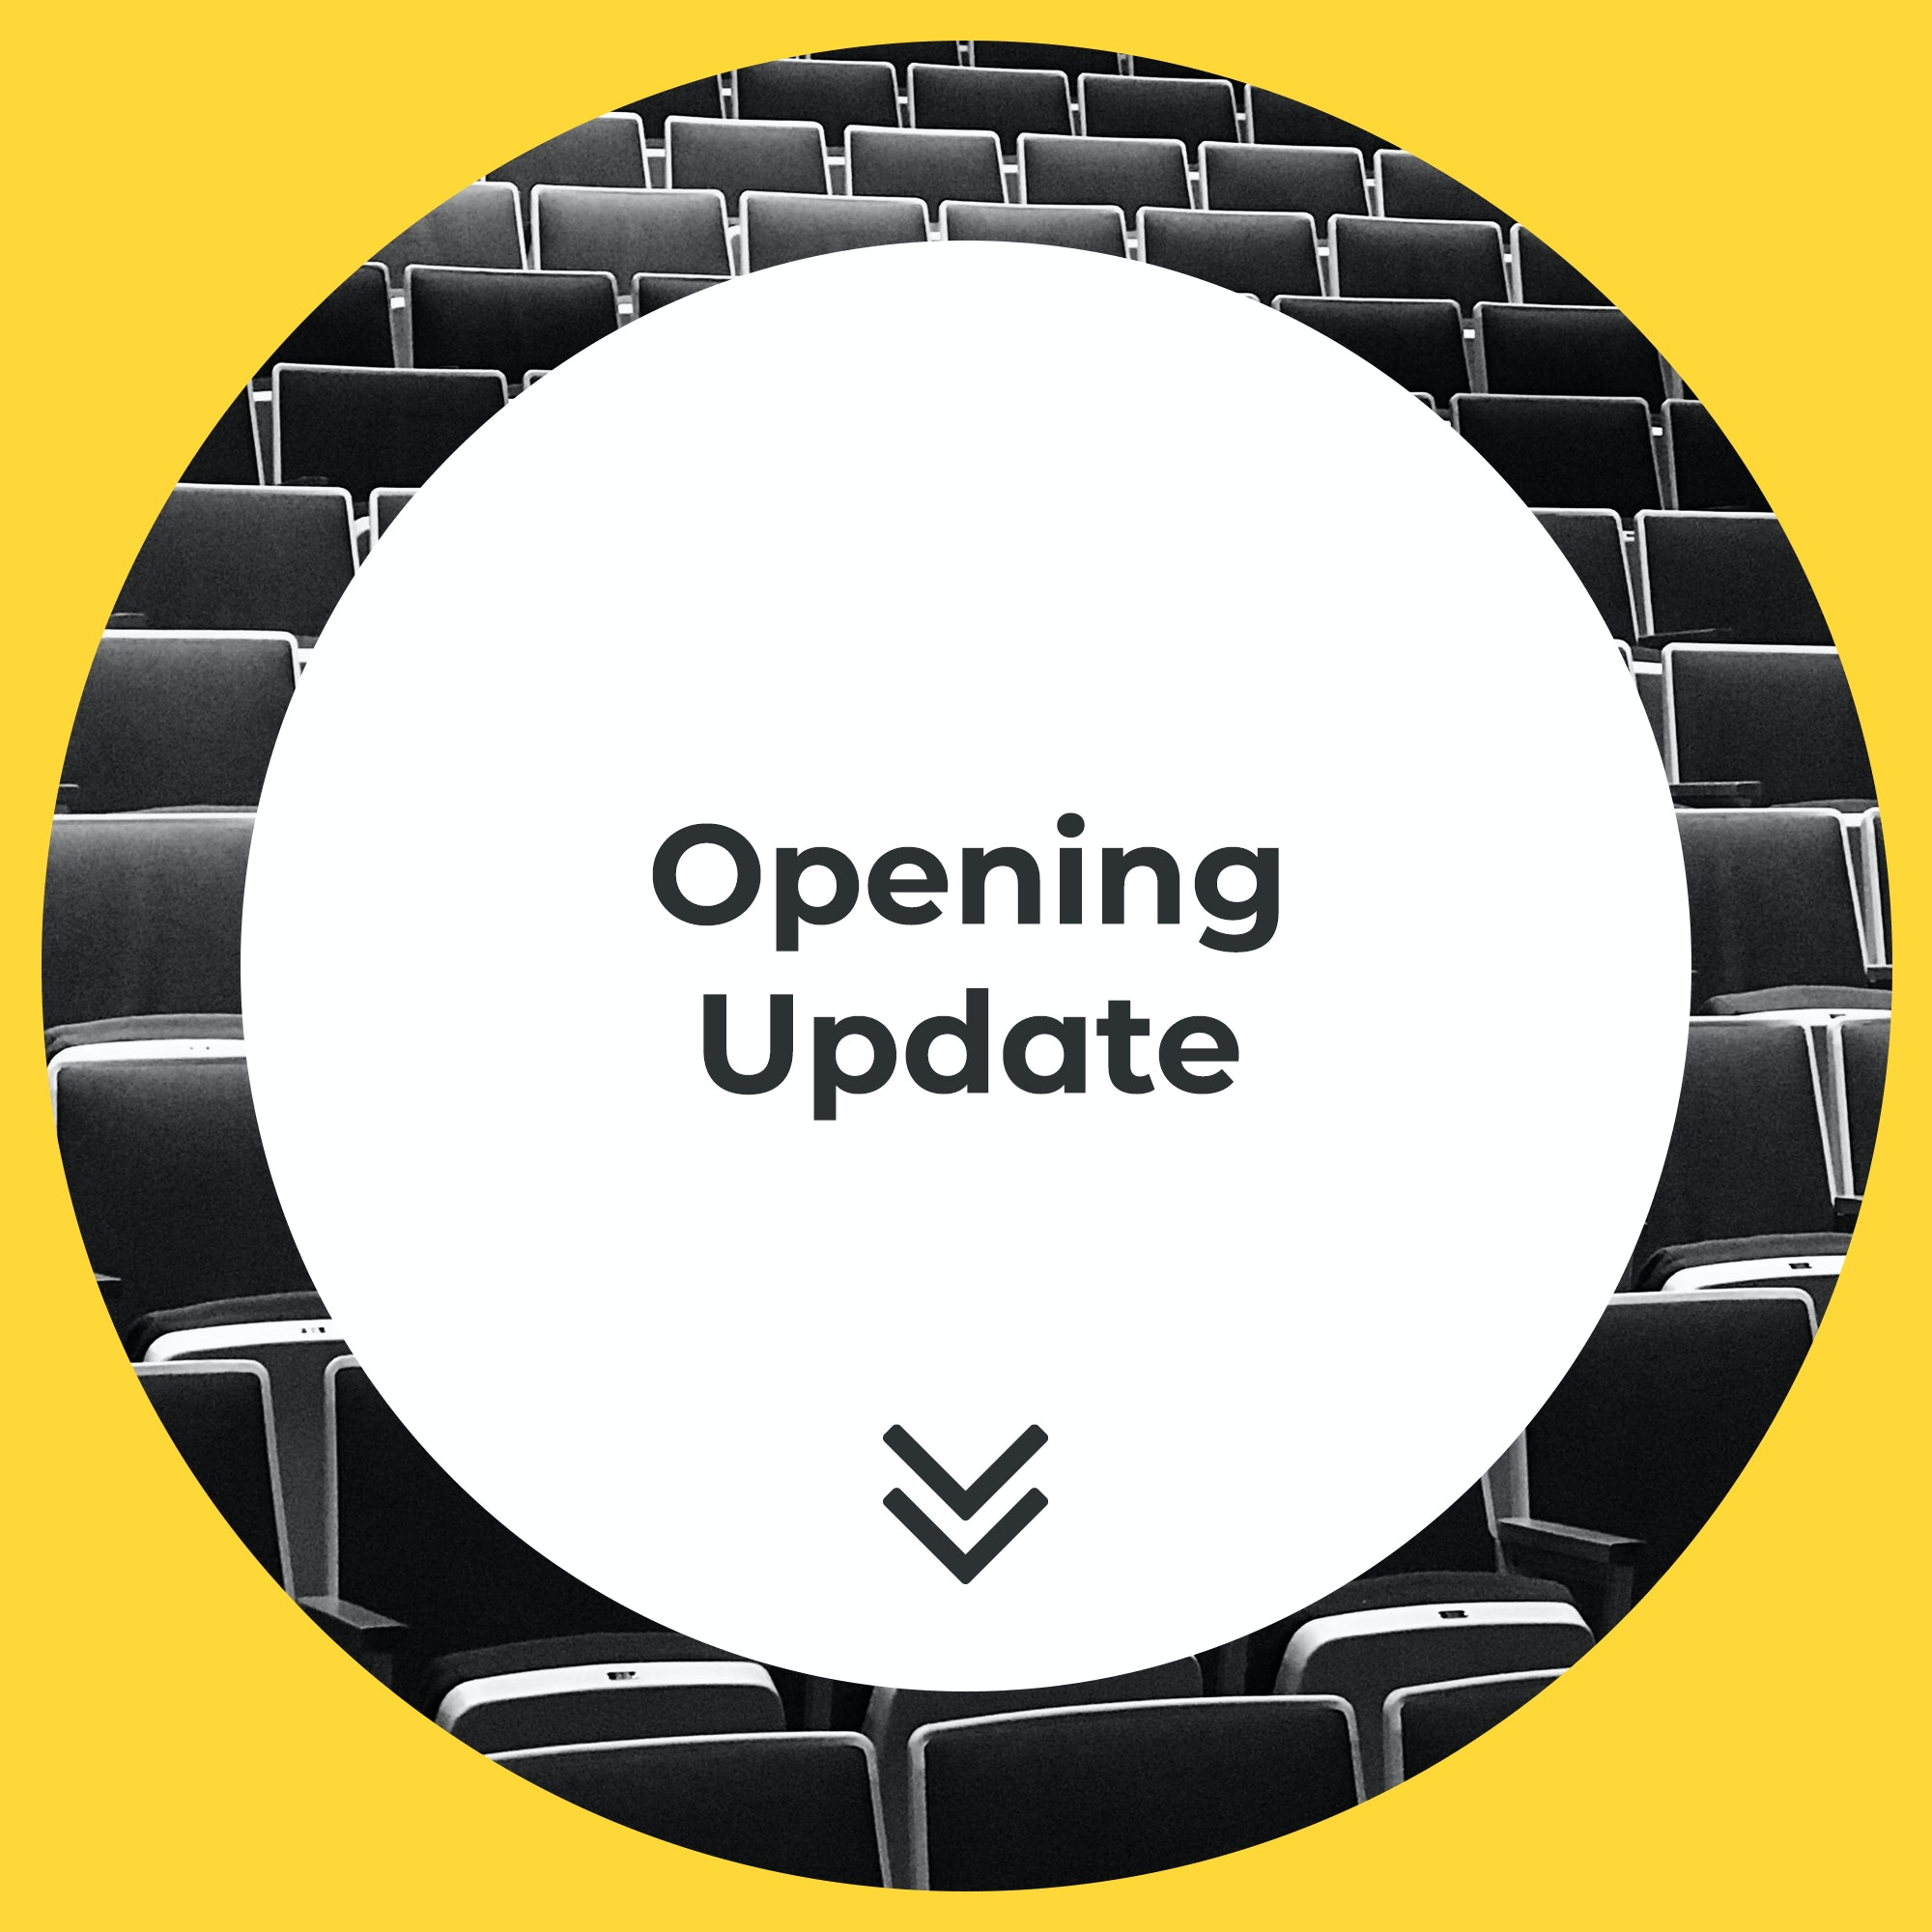 Opening Update Modern Yellow Circles - Title